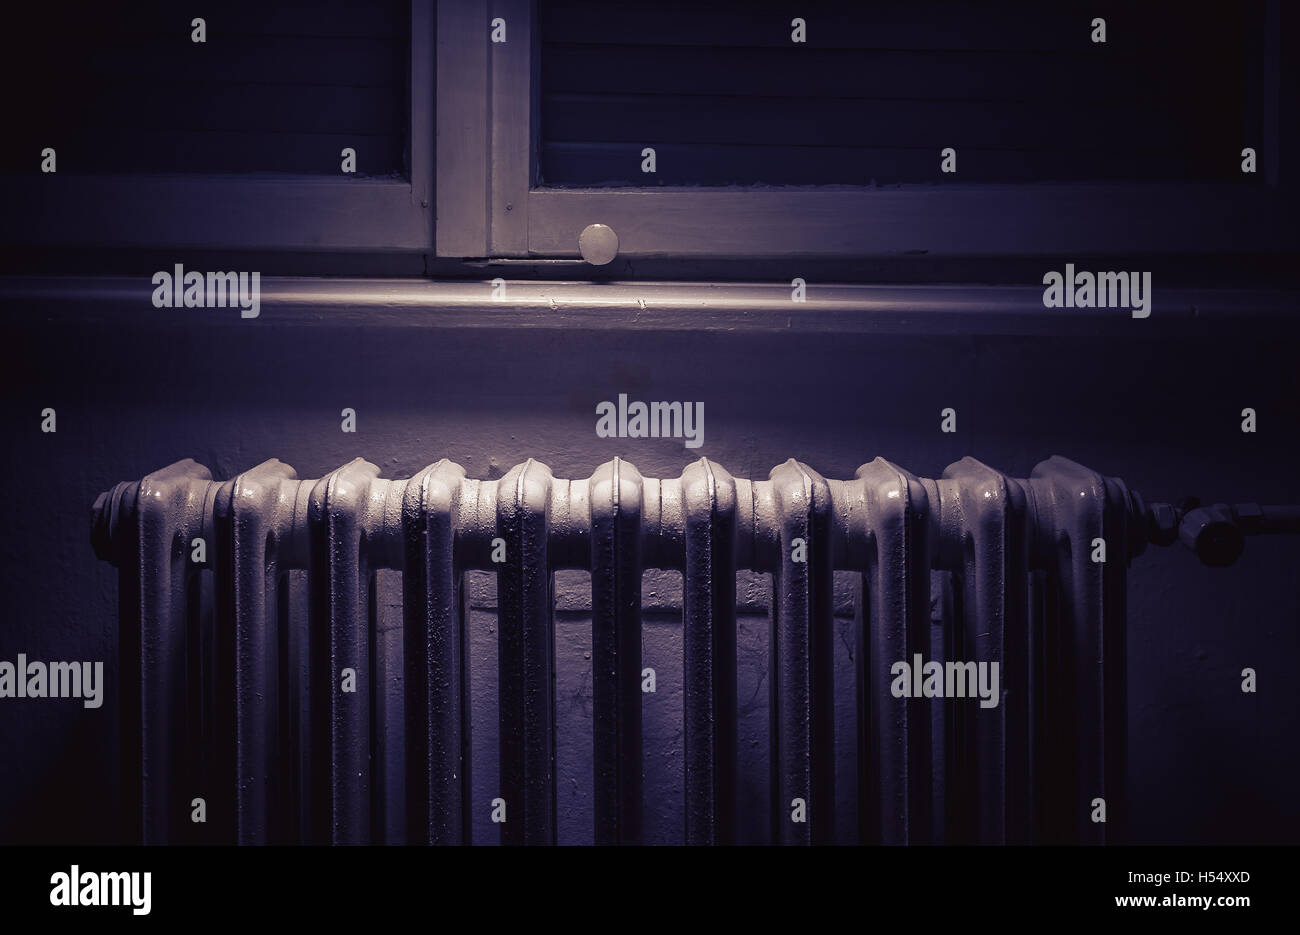 Conceptual composition about cold weather, details of an old radiator. - Stock Image